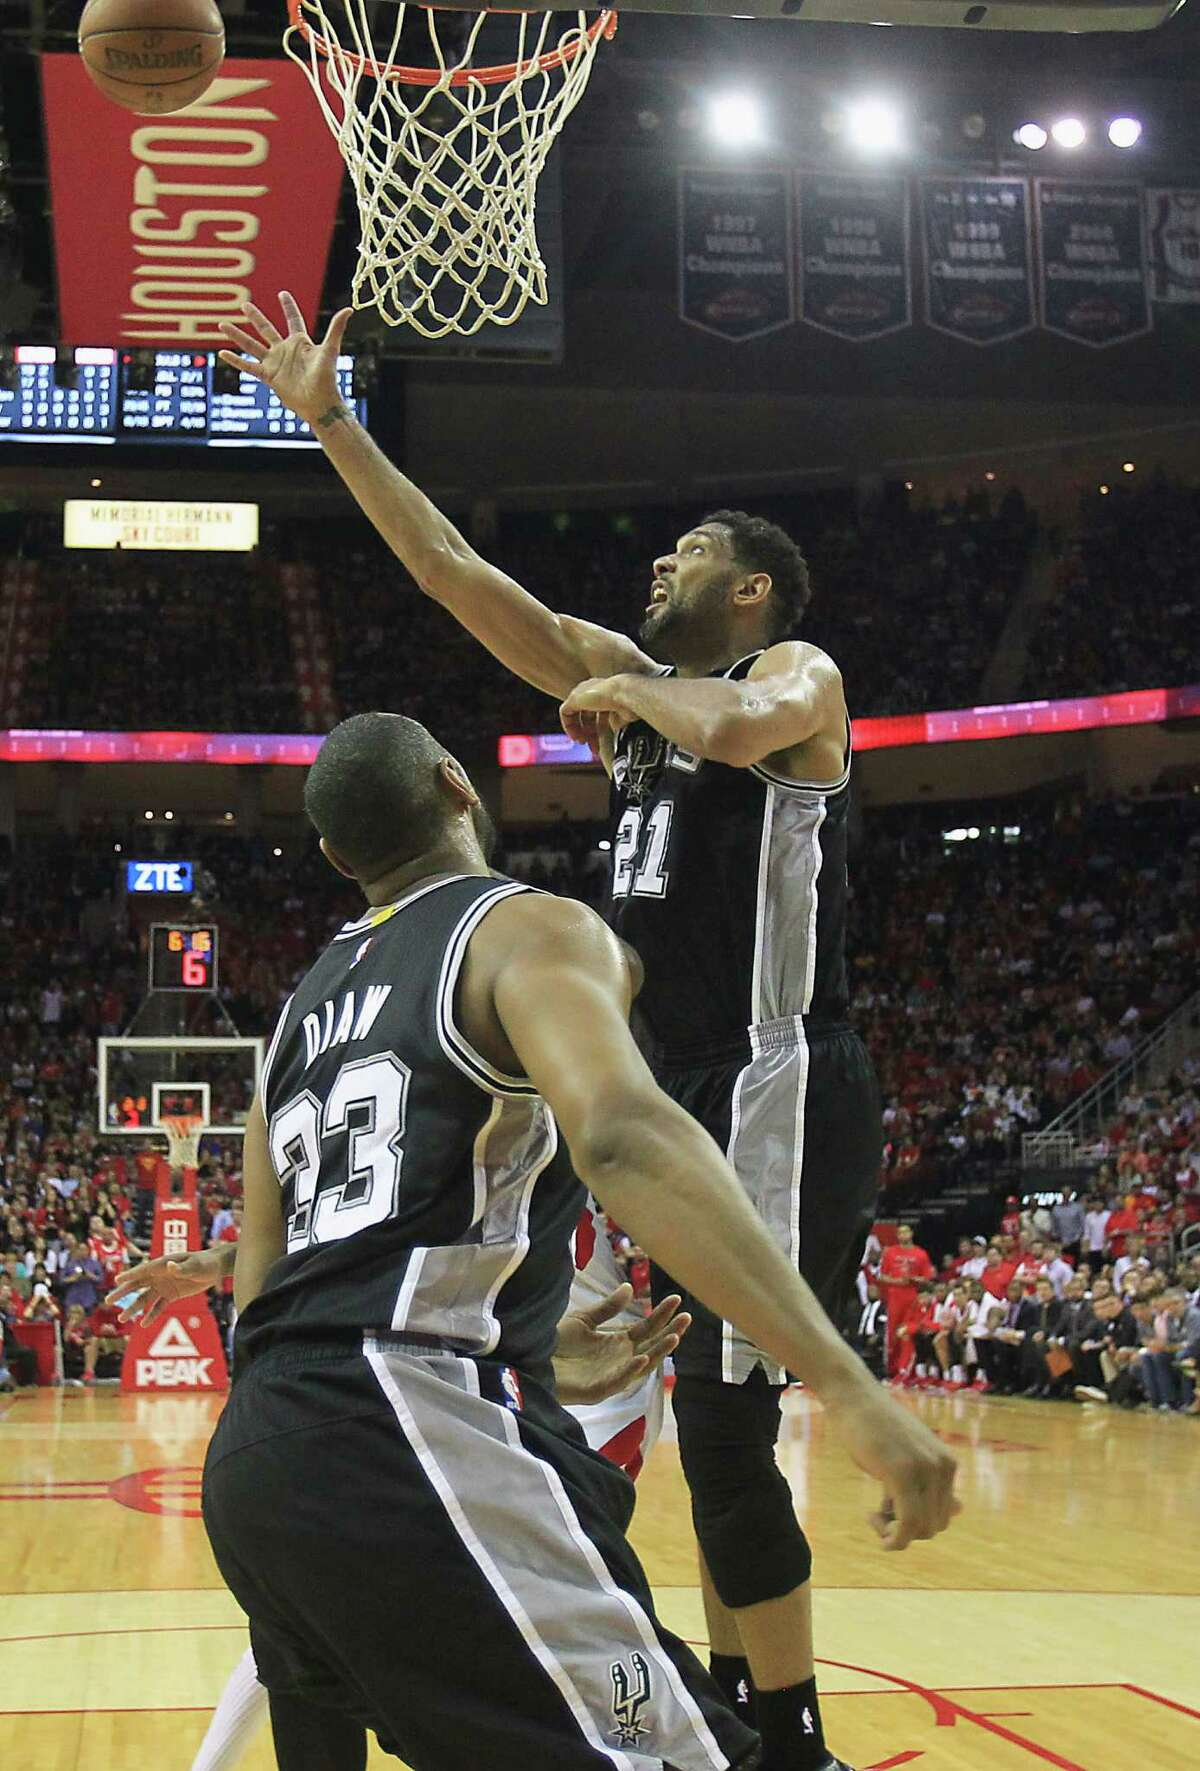 Spurs longtime star Tim Duncan, right, again came up big Friday night at Toyota Center, scoring 29 points to go with 10 rebounds and three blocks.